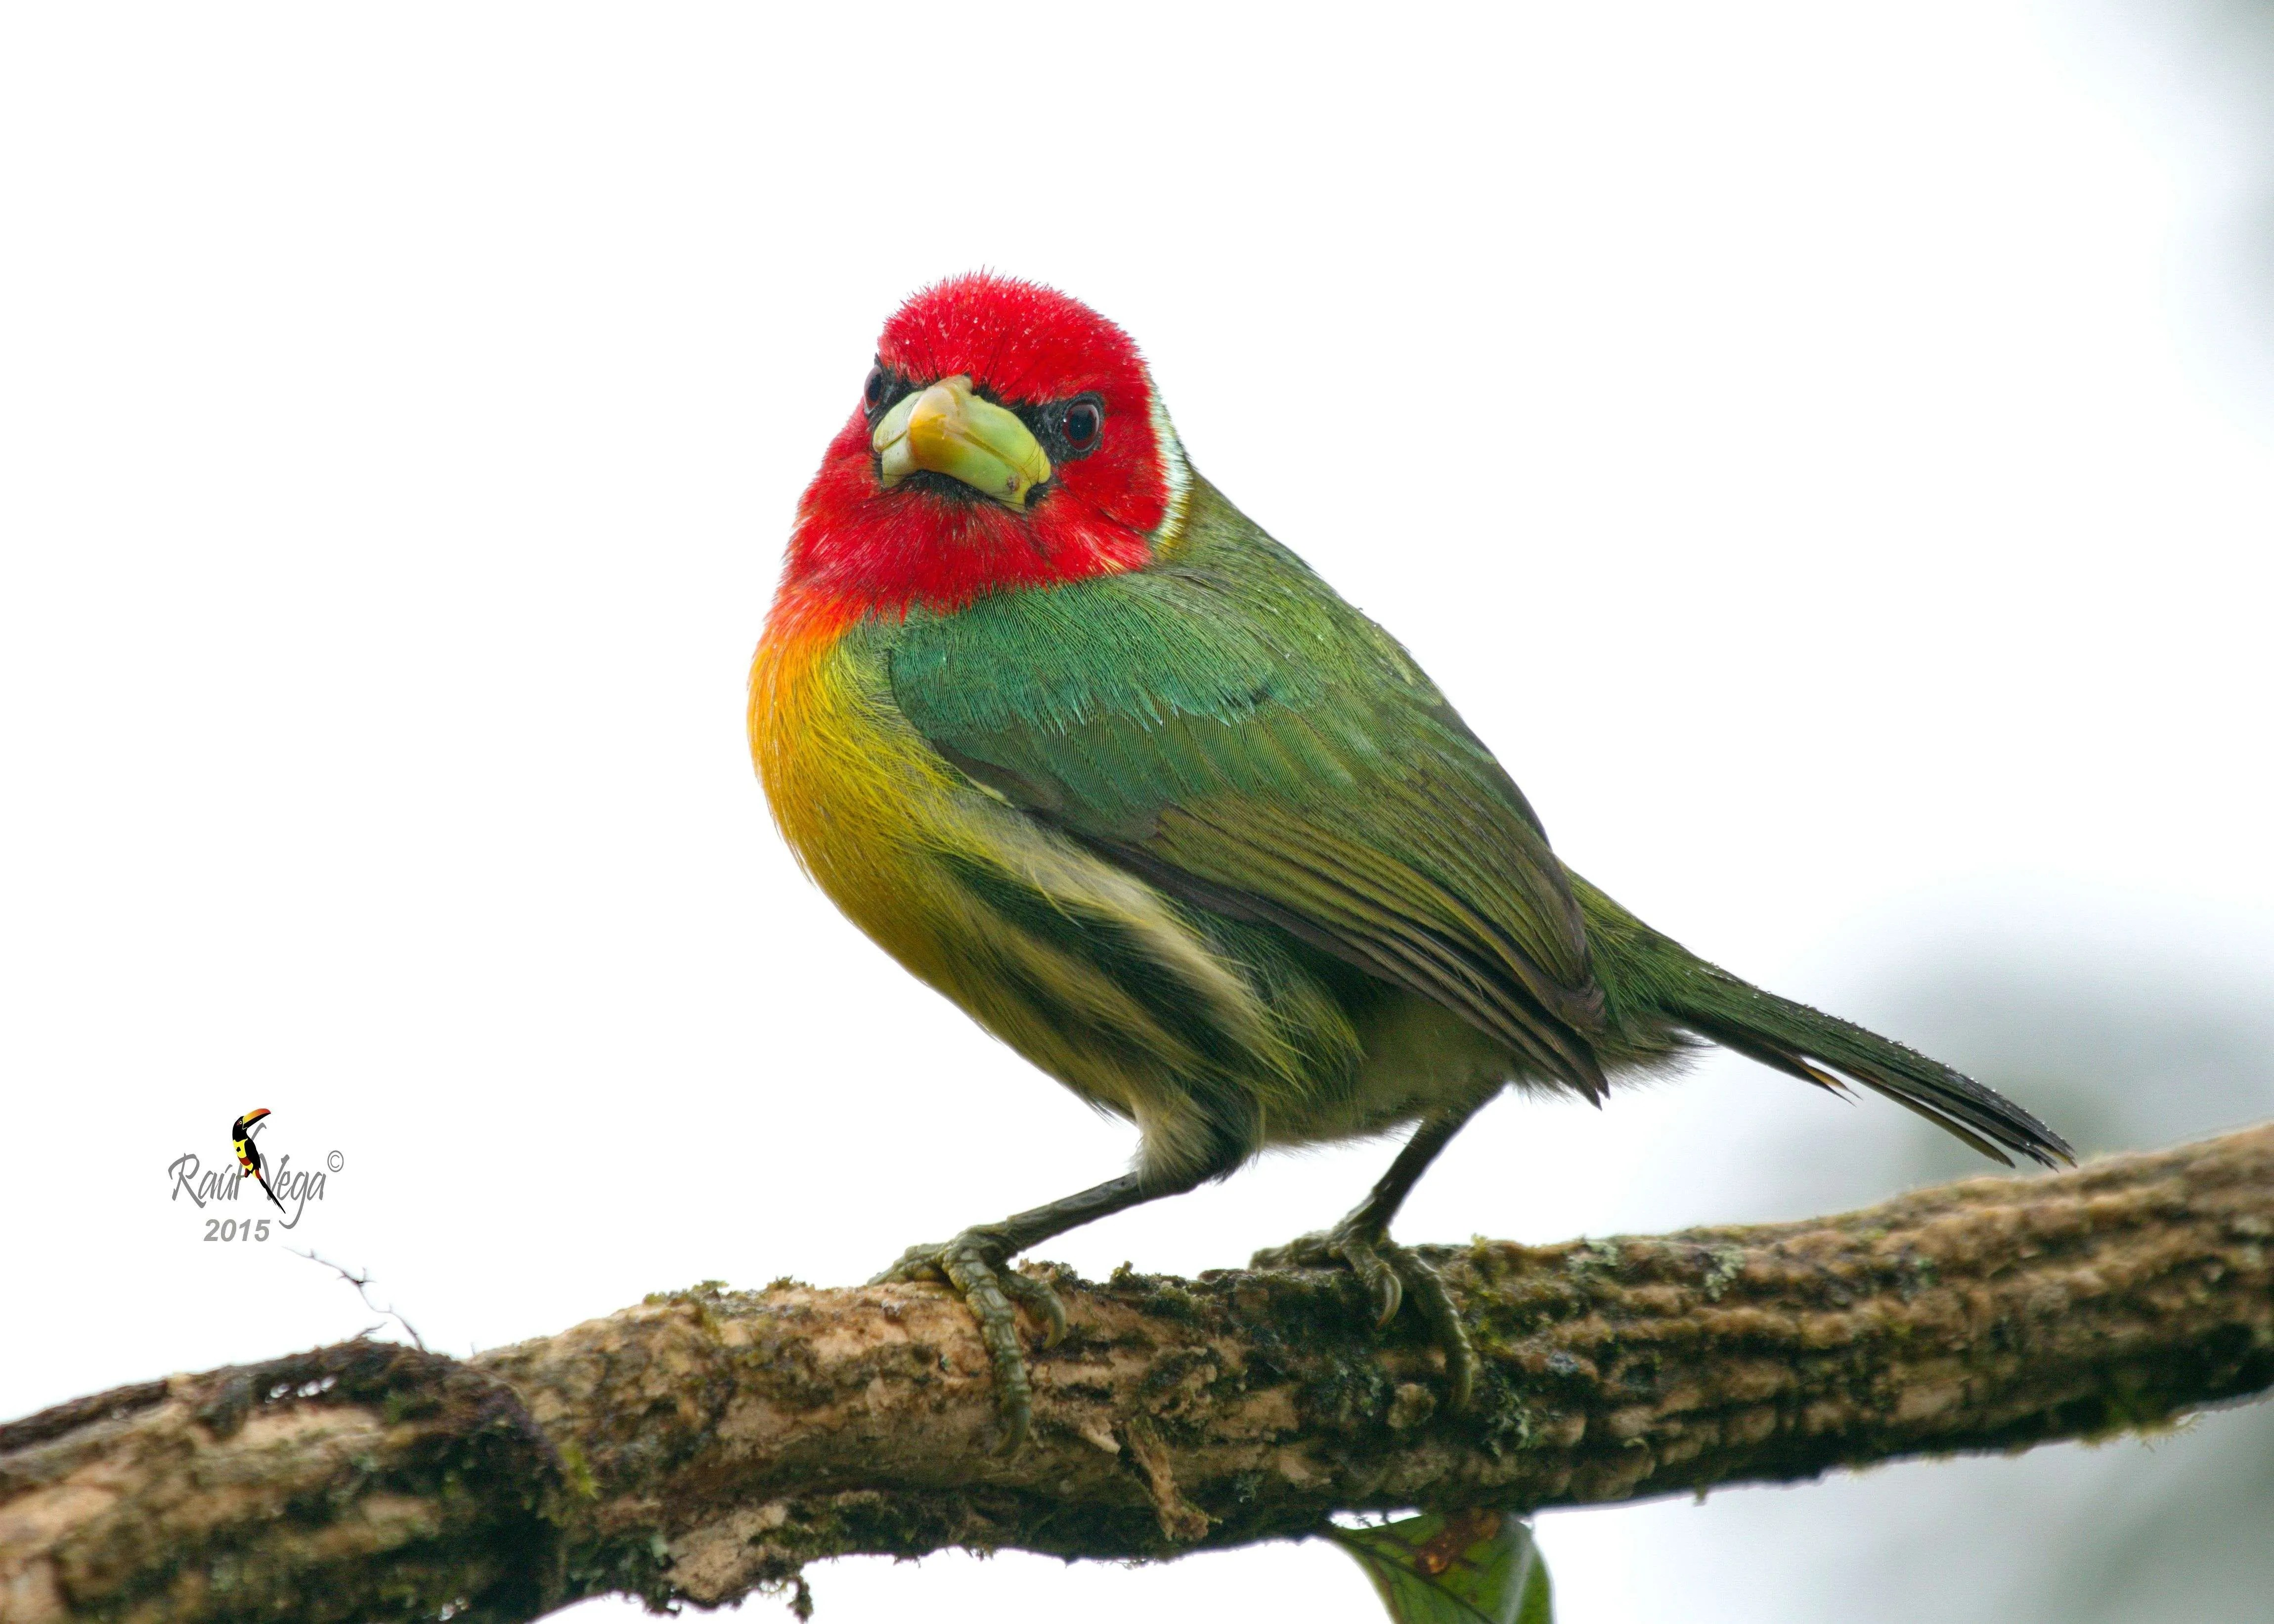 Costa Rica: Angry Birds